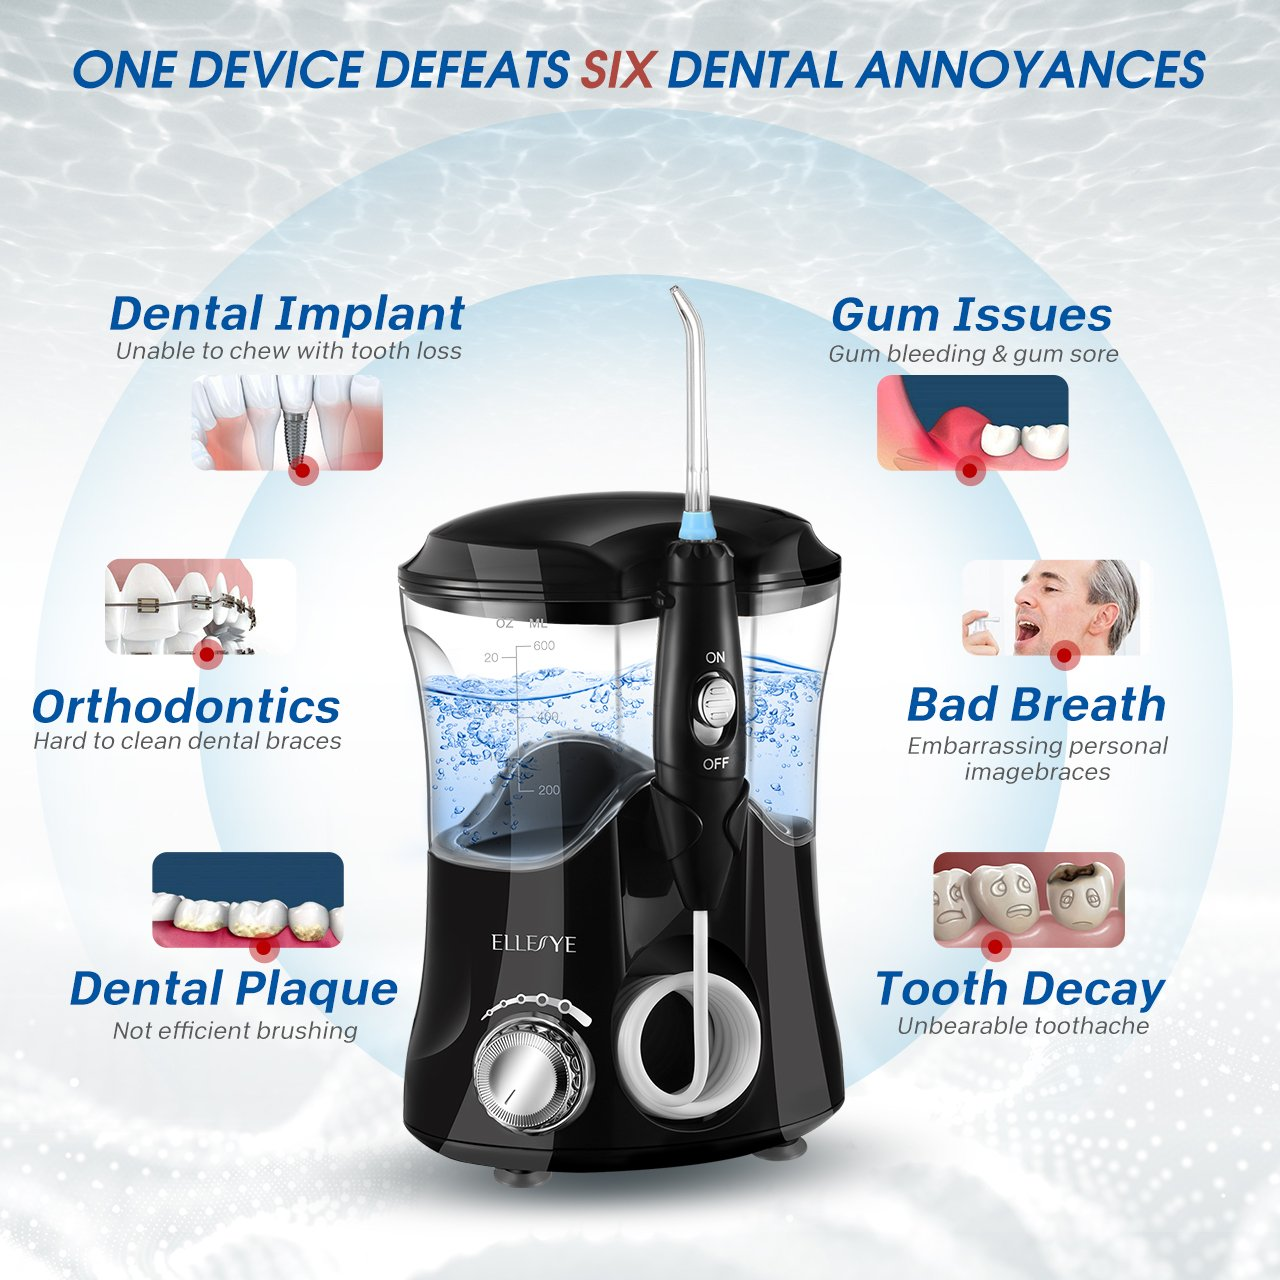 Water Flosser, ELLESYE Oral Irrigator 600ml with 9 Multifunctional Jet Tips, 3 Min Timer, Dental Water Flosser for Braces Care & Teeth Cleaning, Quiet Design for Adults & Kid Use by ELLESYE (Image #3)